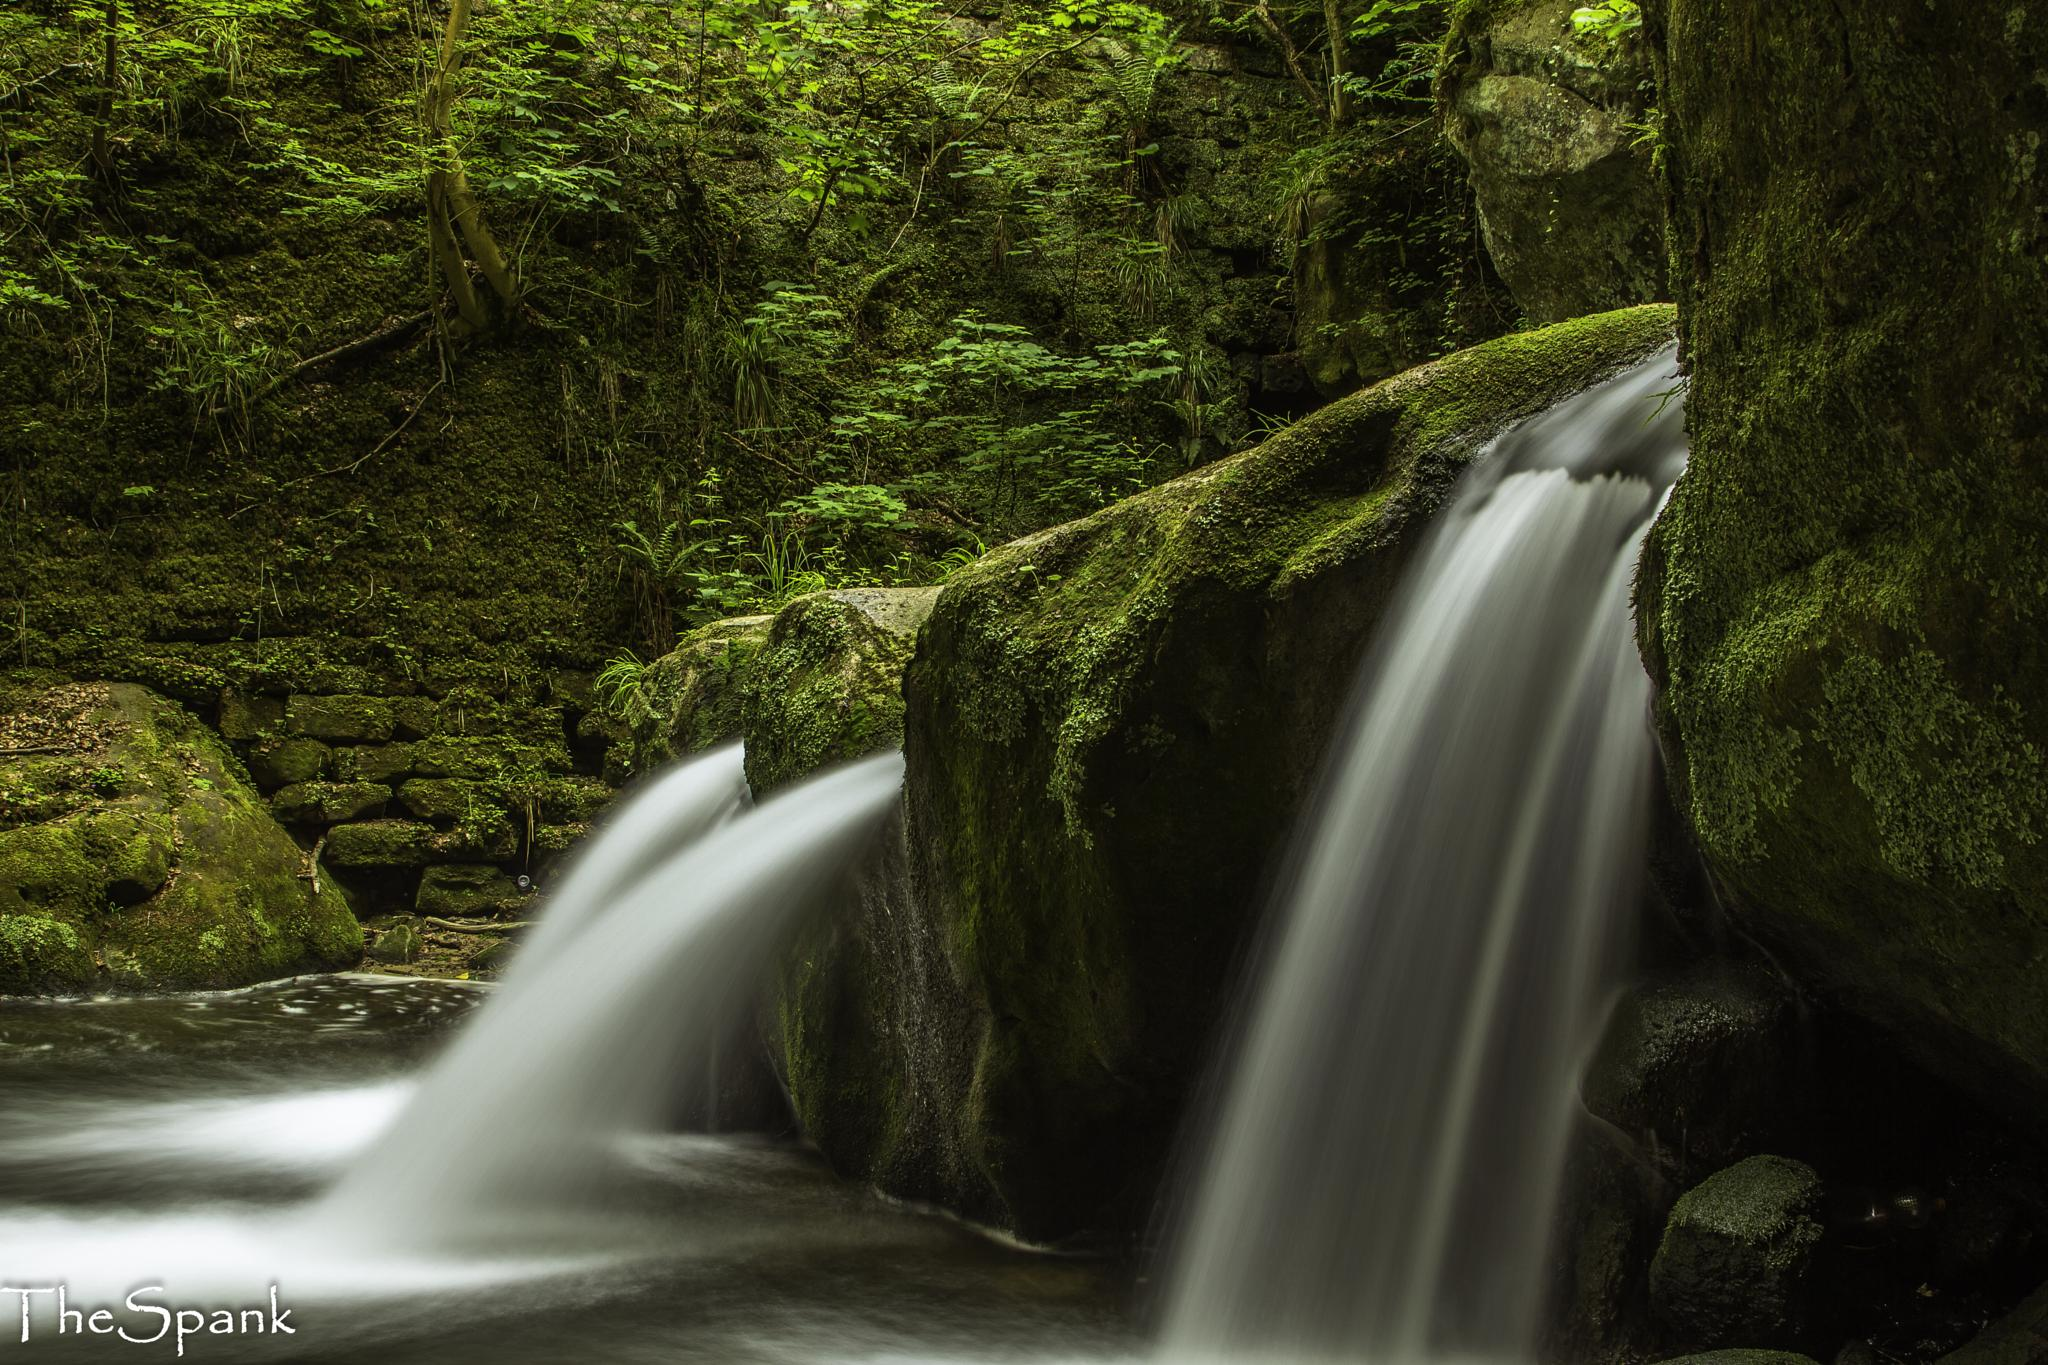 Mullerthal 2 by Henk